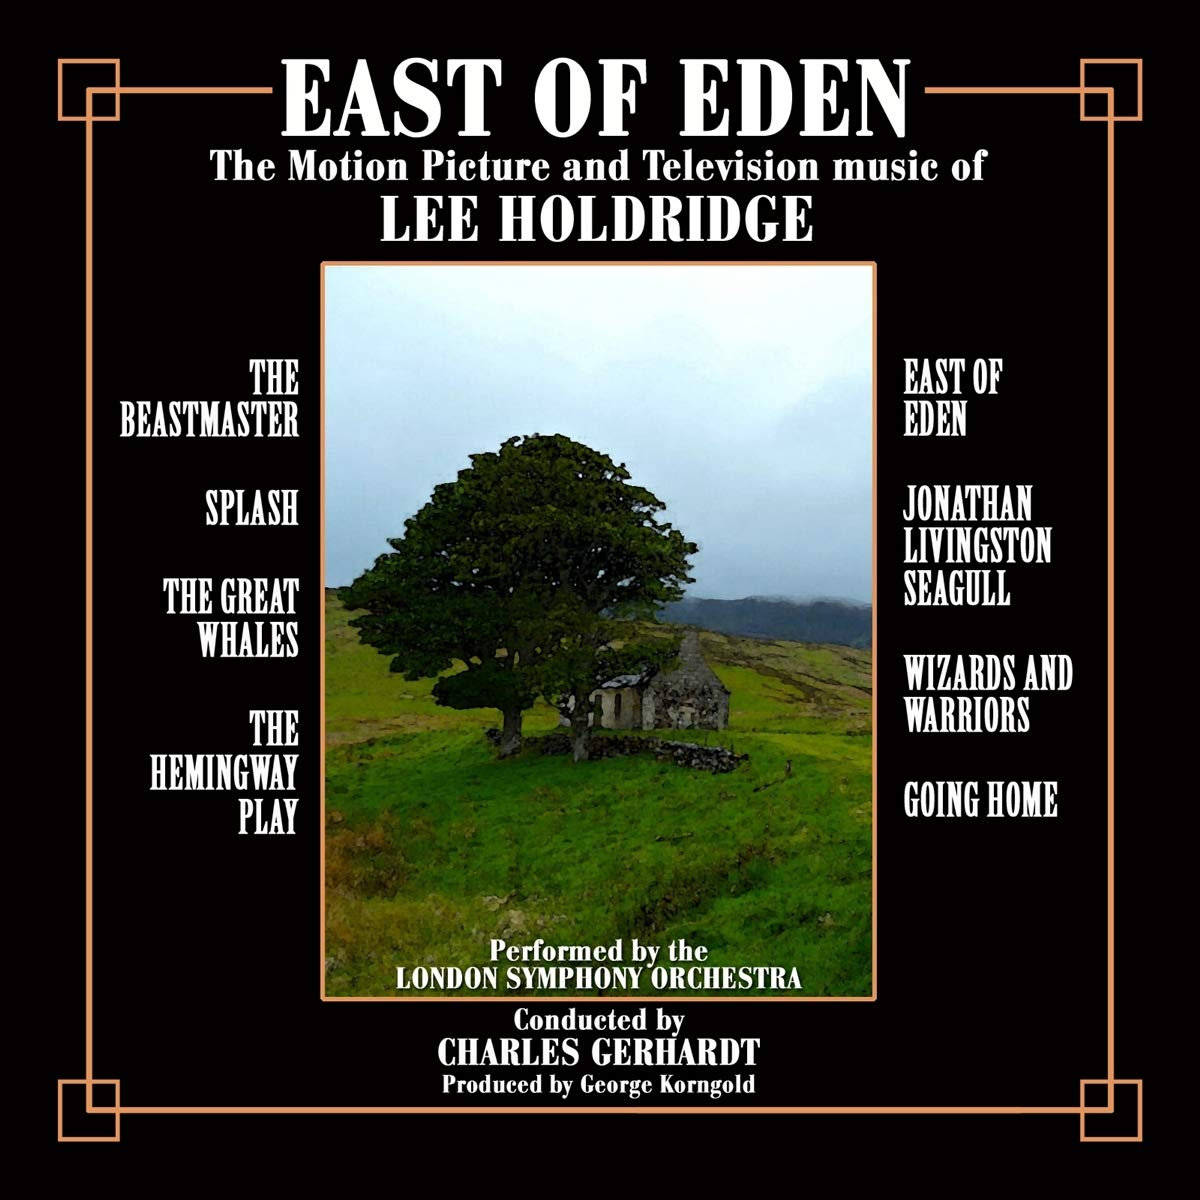 East of Eden: The Motion Picture and Television Music of Lee Holdridge